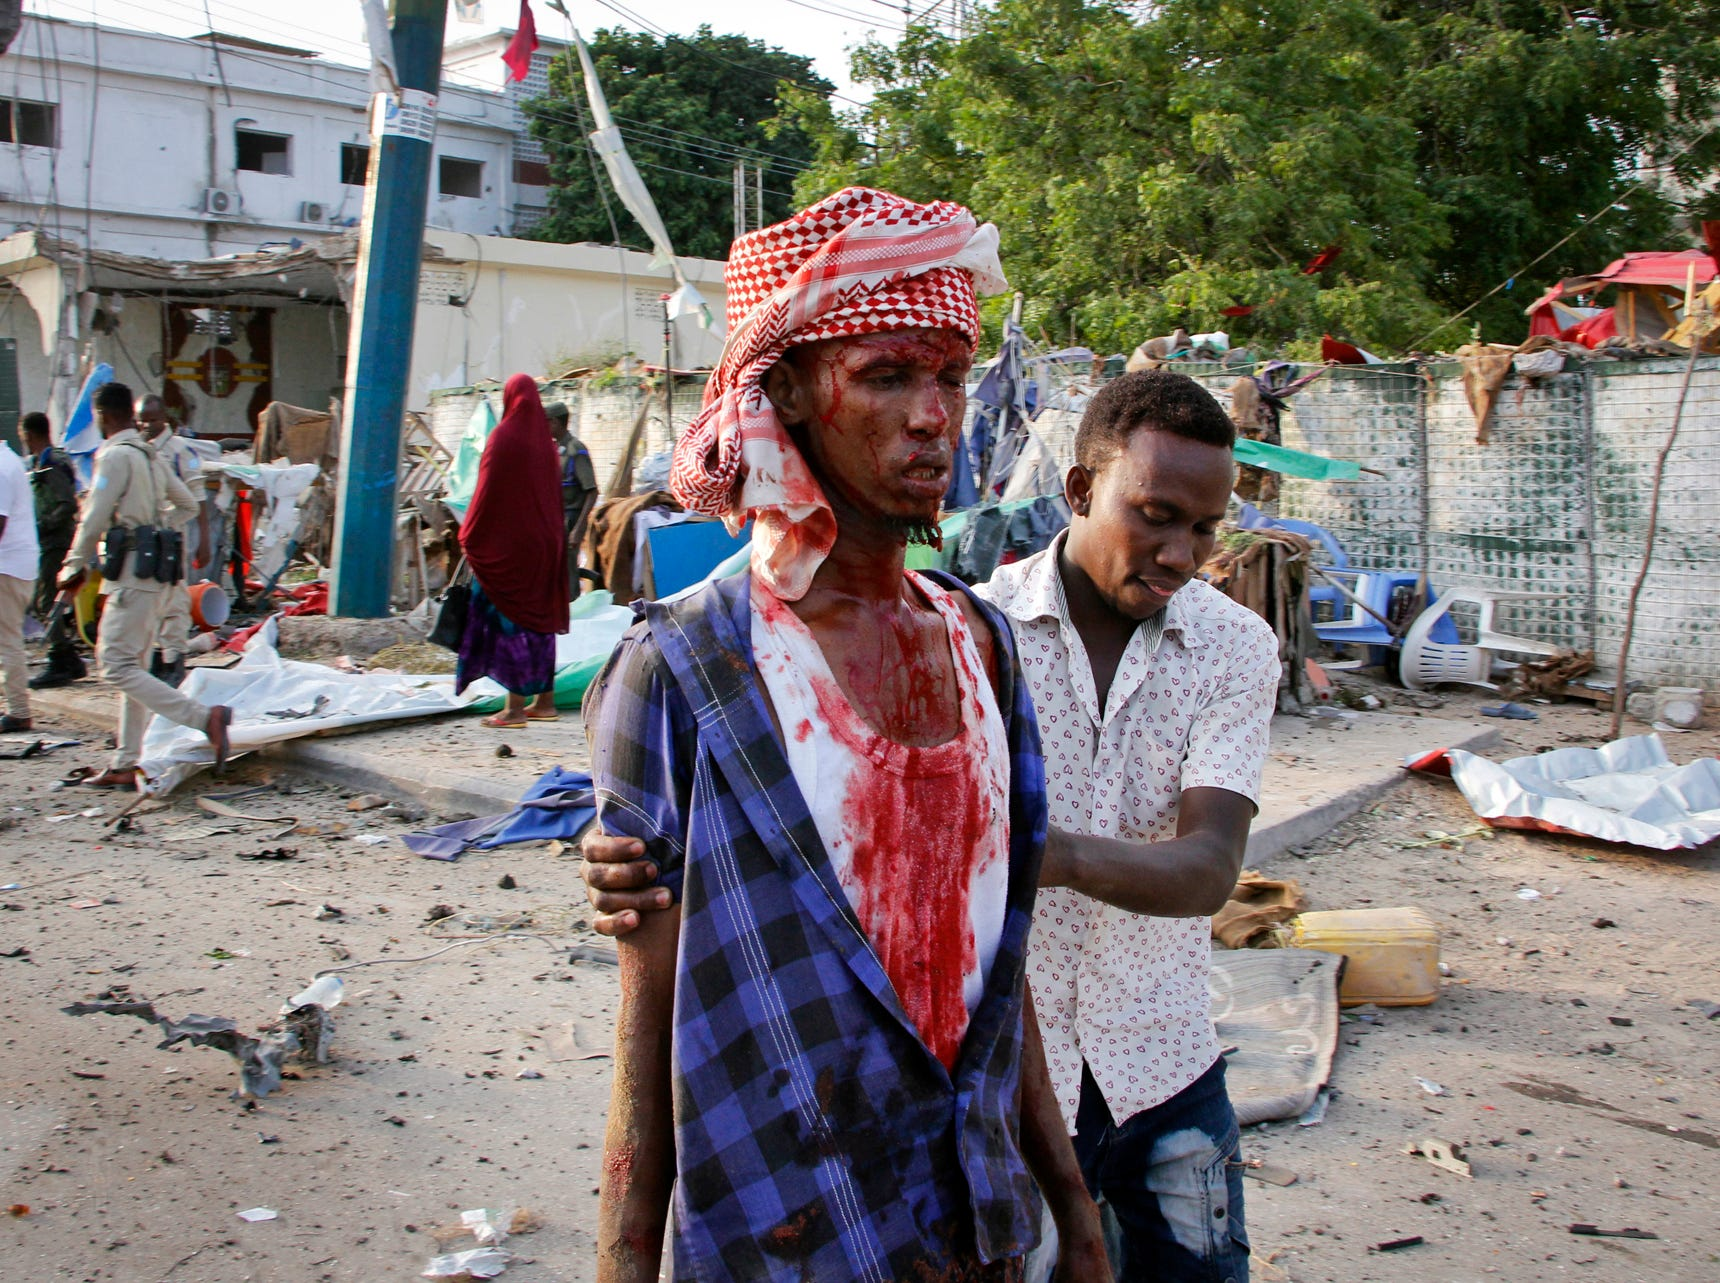 A Somali helps an injured civilian who was wounded in a bomb blast near the Sahafi hotel in the capital Mogadishu, Somalia, Friday, Nov. 9, 2018. Three car bombs by Islamic extremists exploded outside the hotel, which is located across the street from the police Criminal Investigations Department, killing at least 10 people according to police. (AP Photo/Farah Abdi Warsameh)